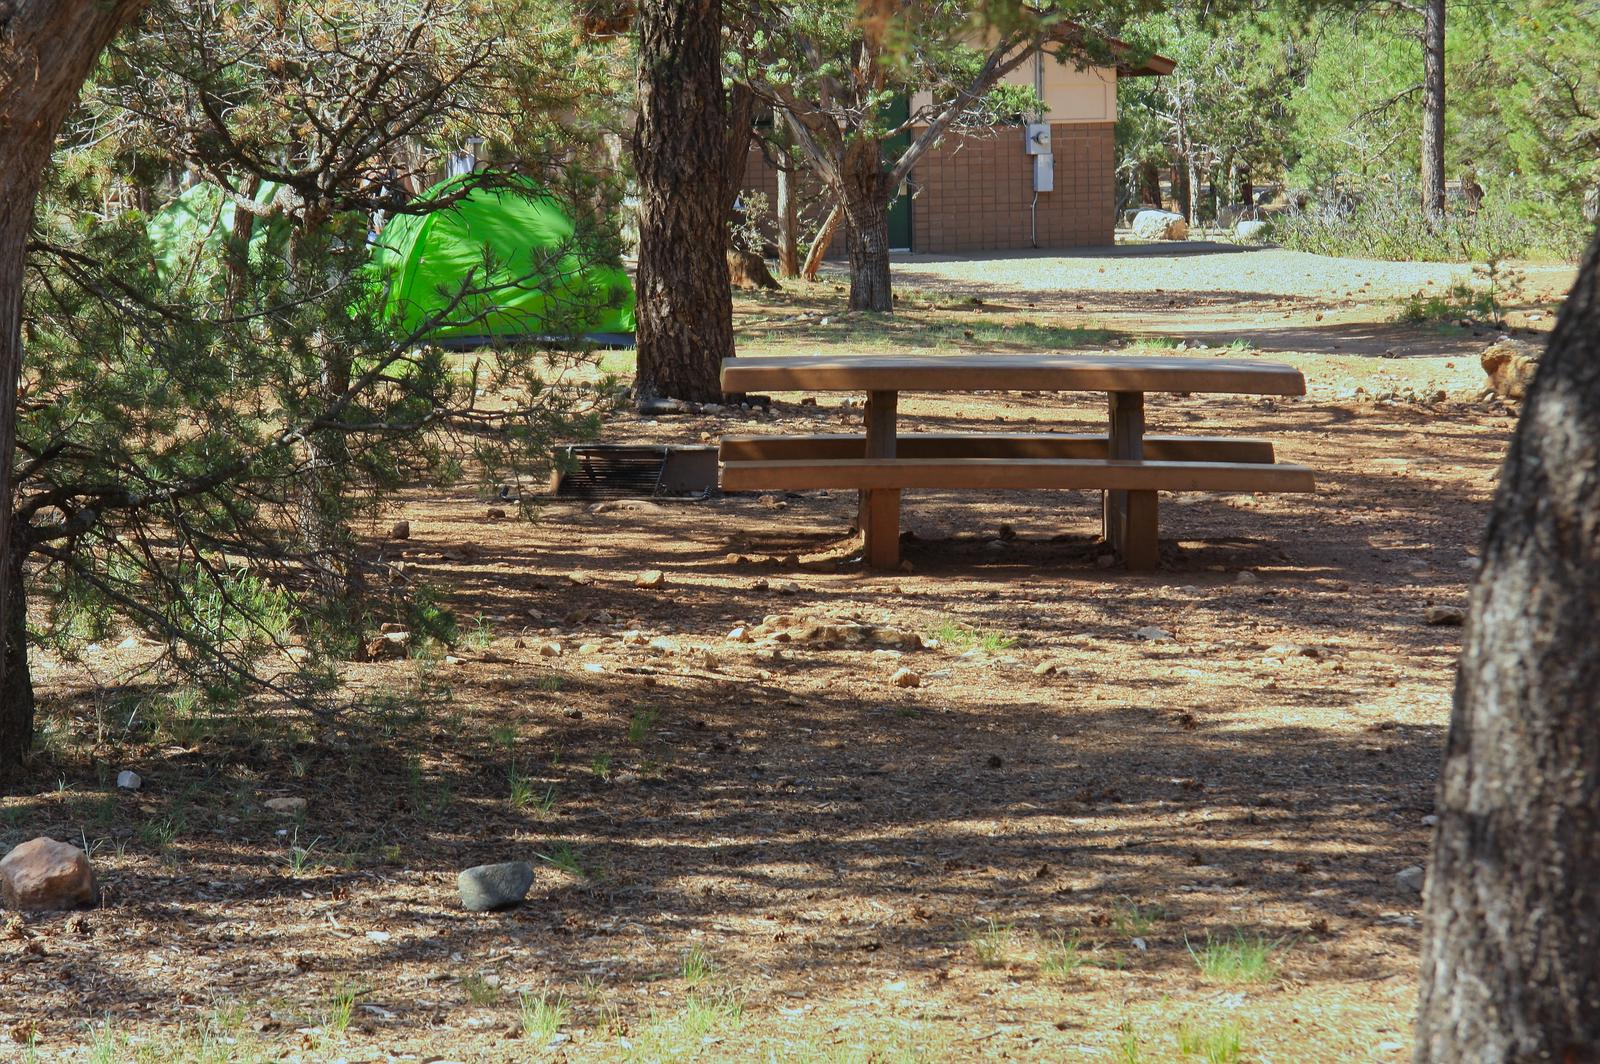 Picnic table, fire pit, and park spot, Mather CampgroundPicnic table, fire pit, and park spot for Oak Loop 228, Mather Campground